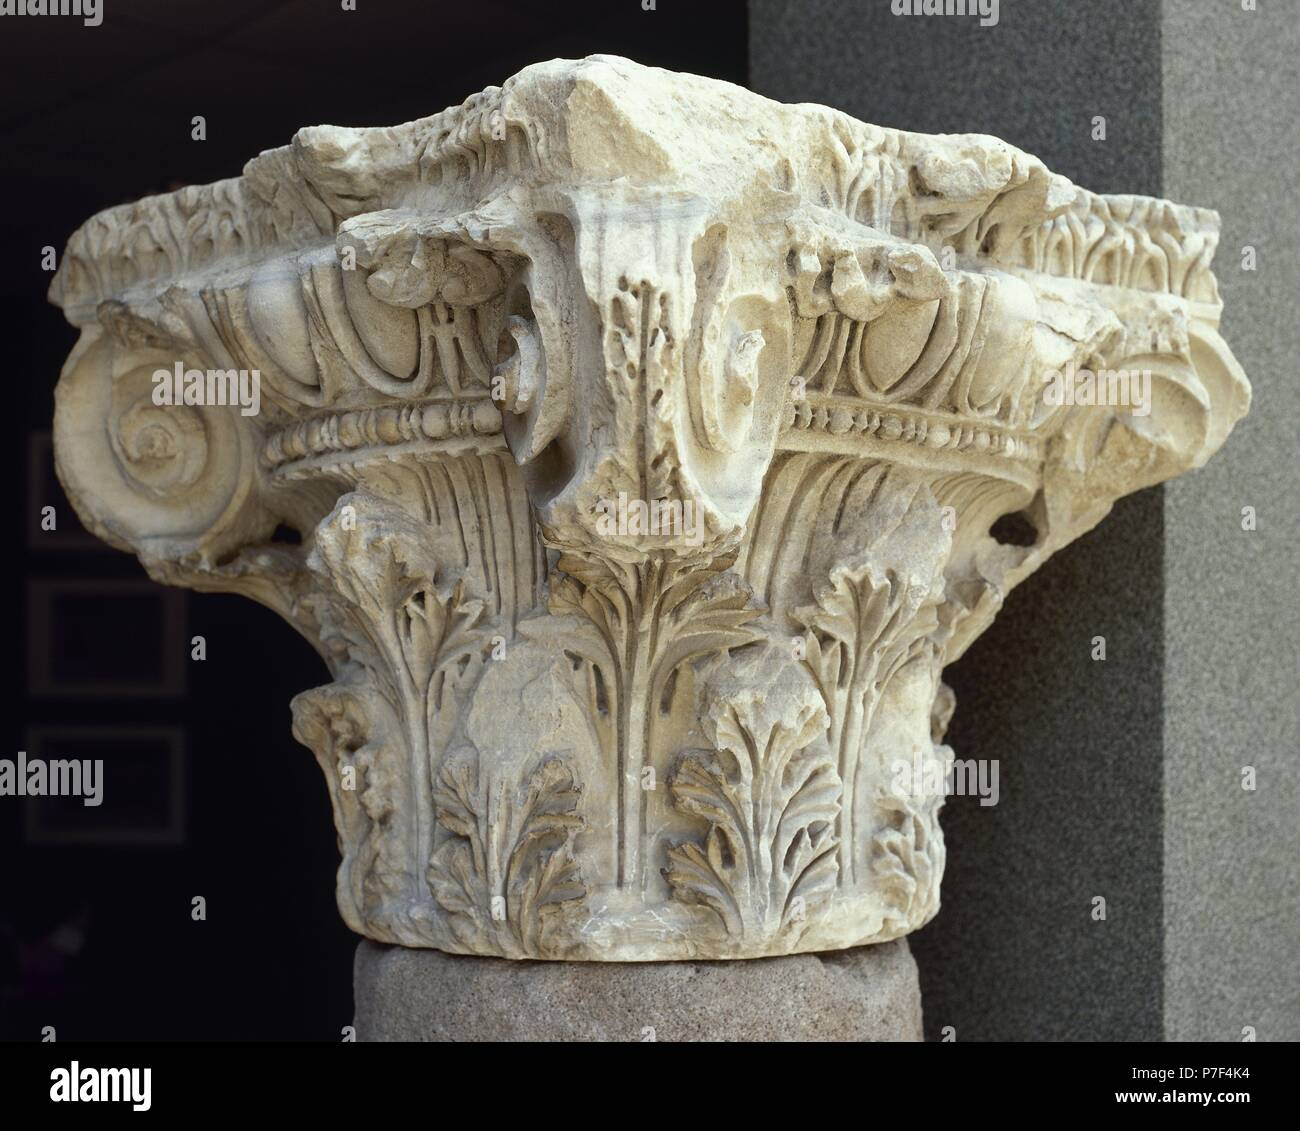 Corinthian capital with acanthus leaves and volute. Pergamon. Turkey. - Stock Image